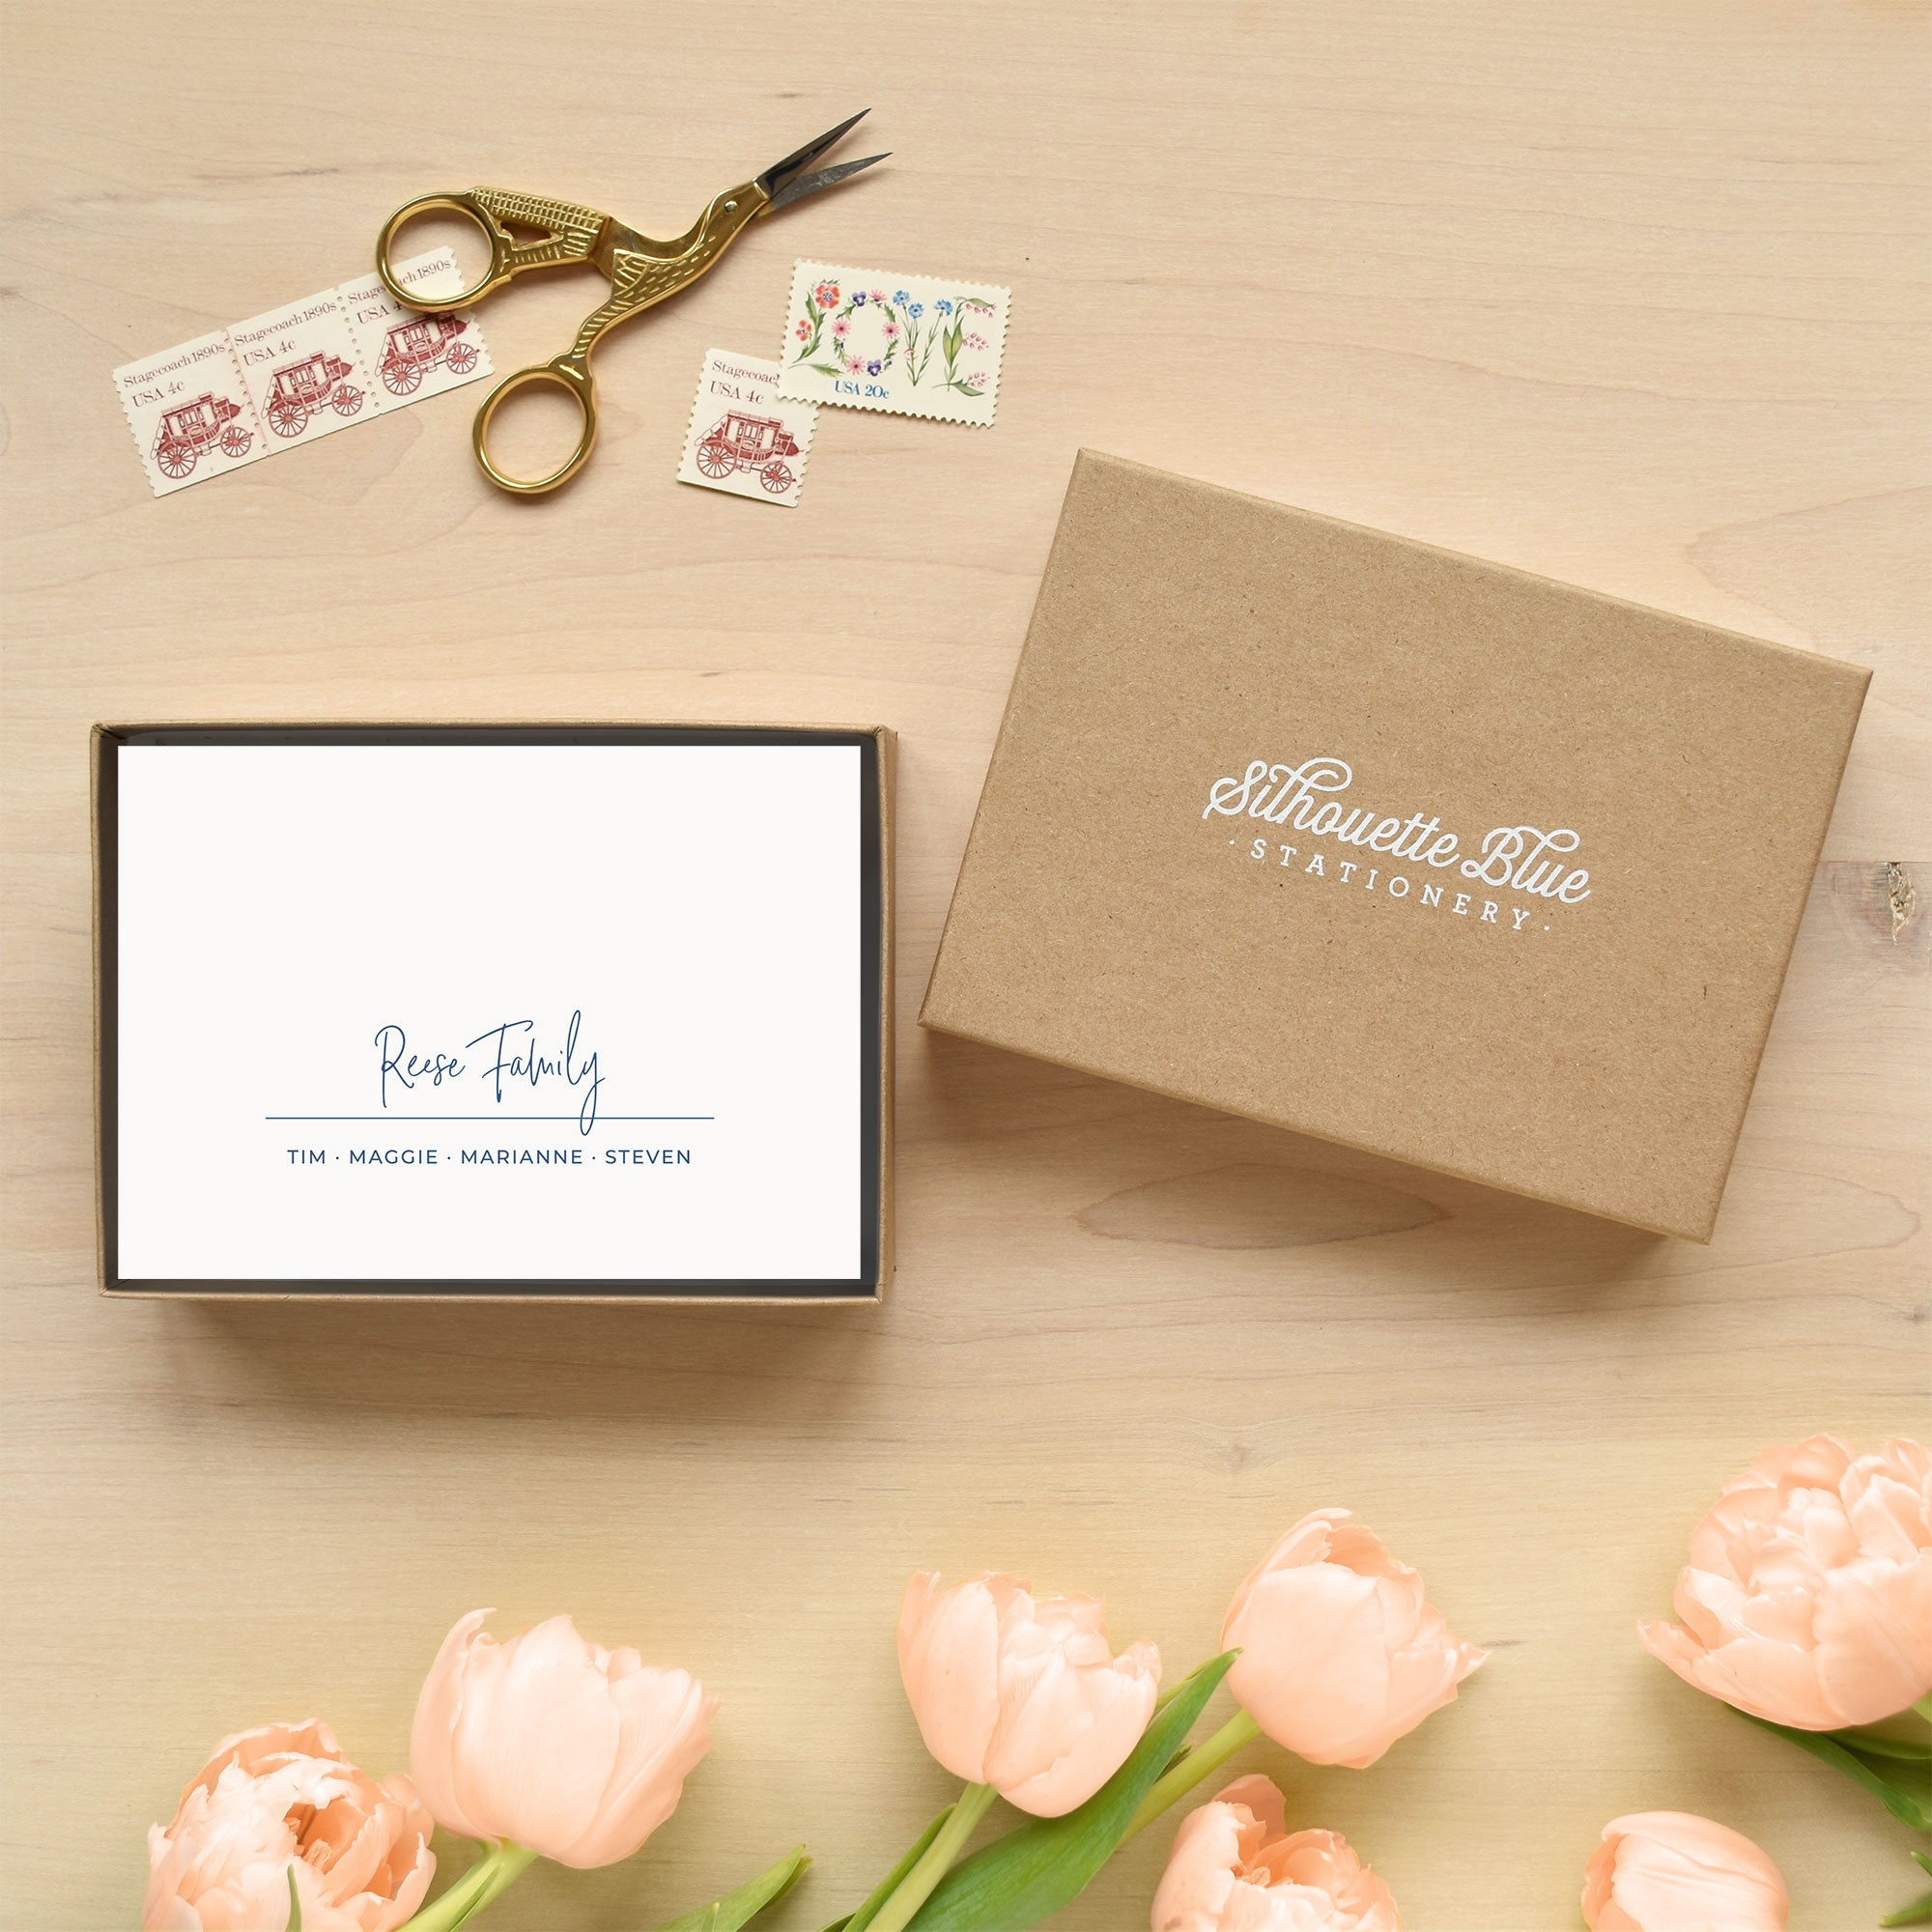 Suite Family Personalized Stationery